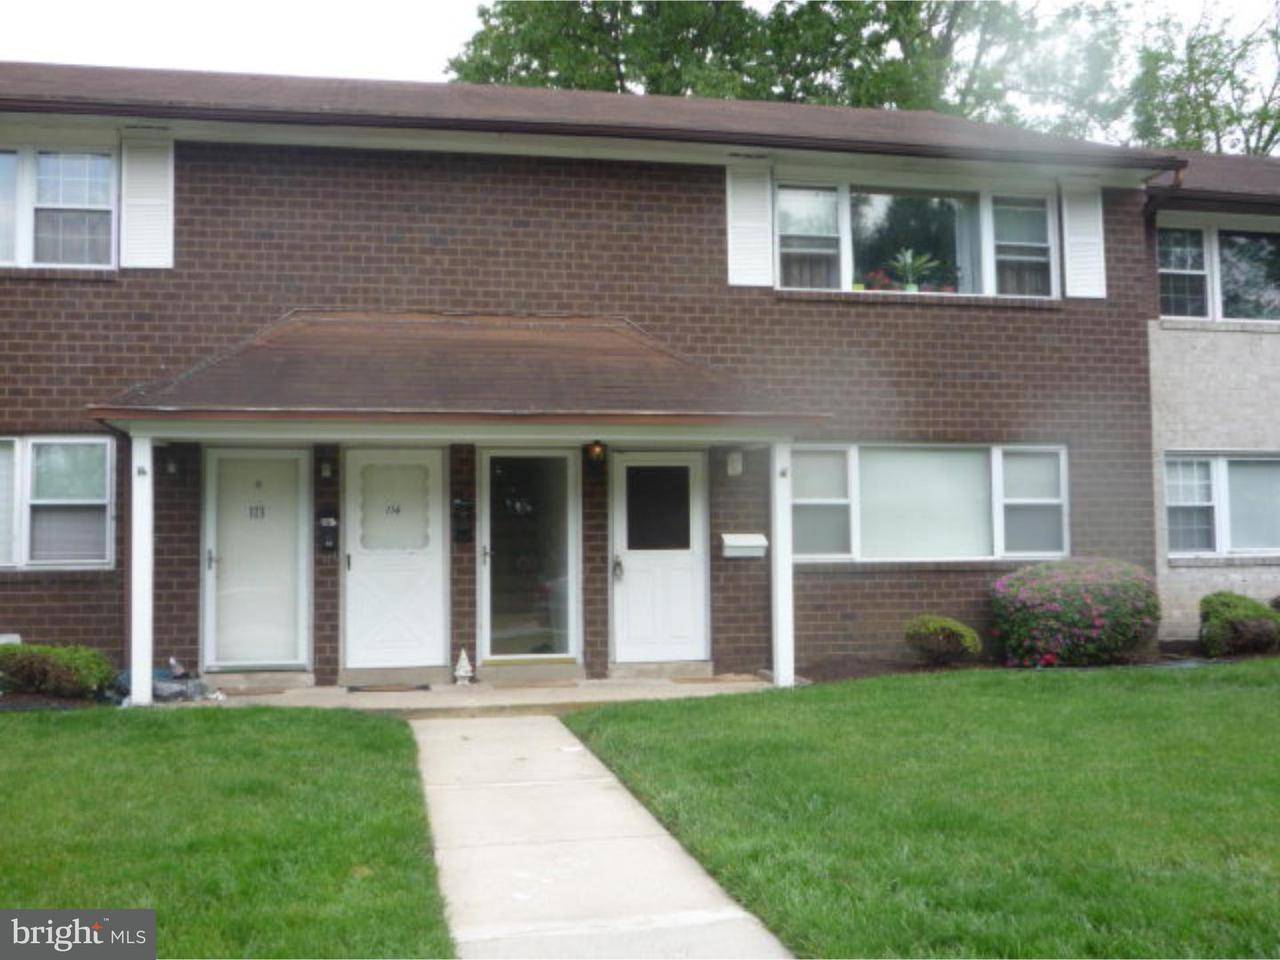 Condominium for Rent at 810 N FORKLANDING RD #115 Maple Shade, New Jersey 08052 United States